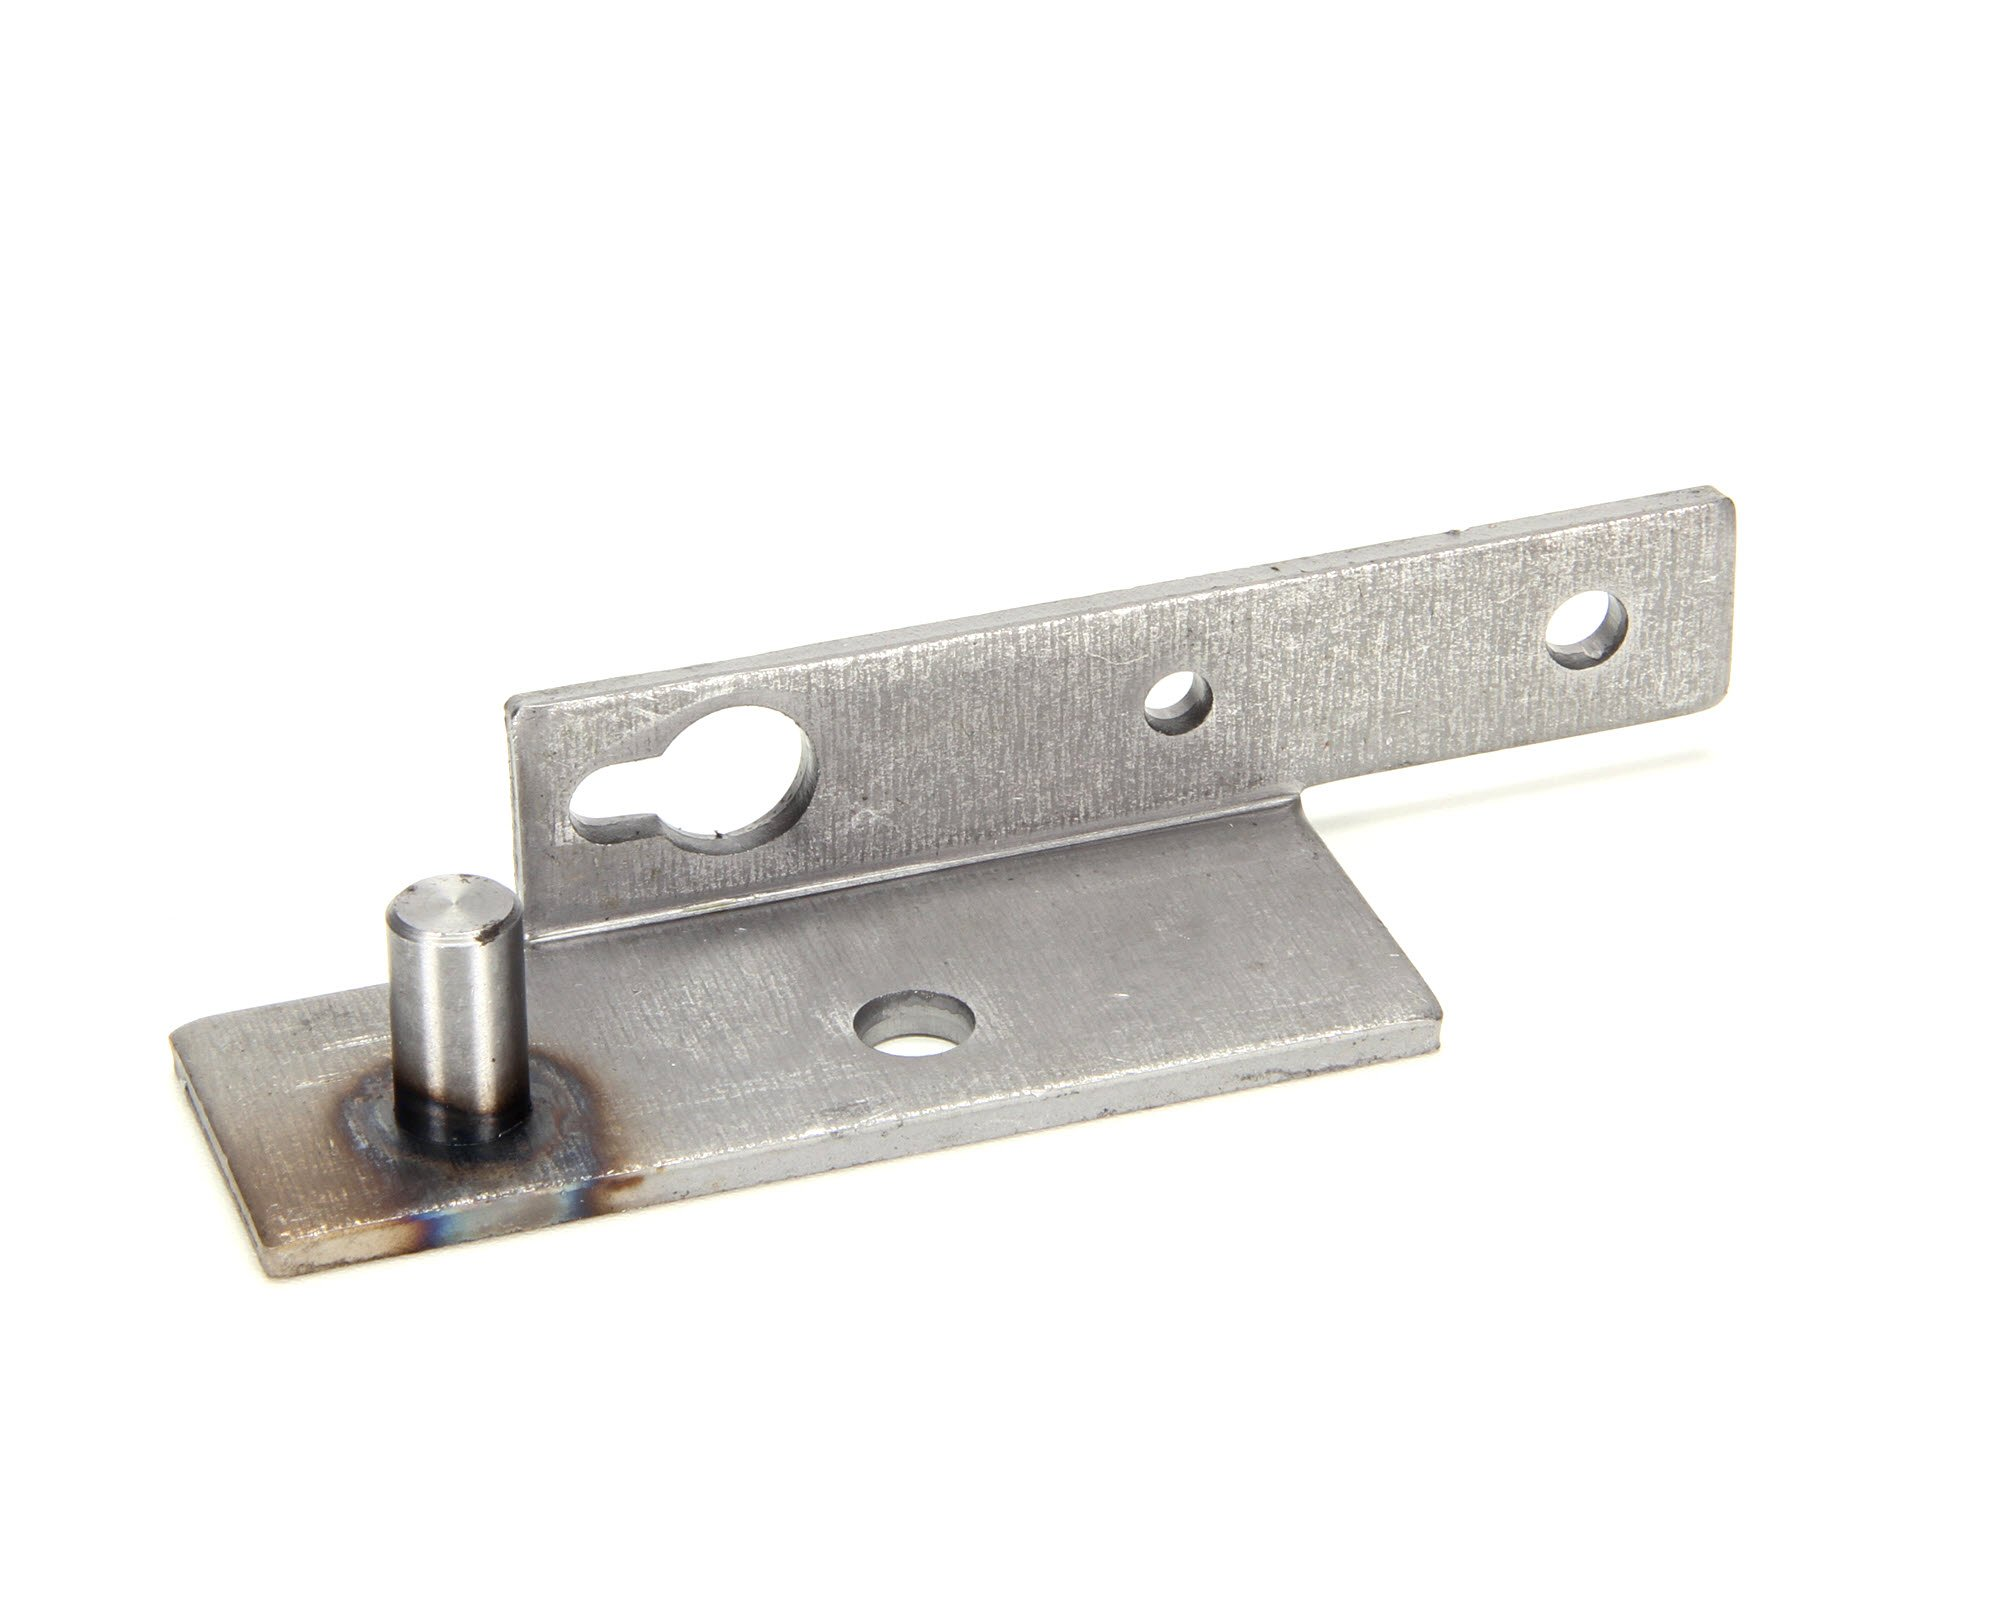 Southbend Range 1189788 Right Door Hinge Assembly